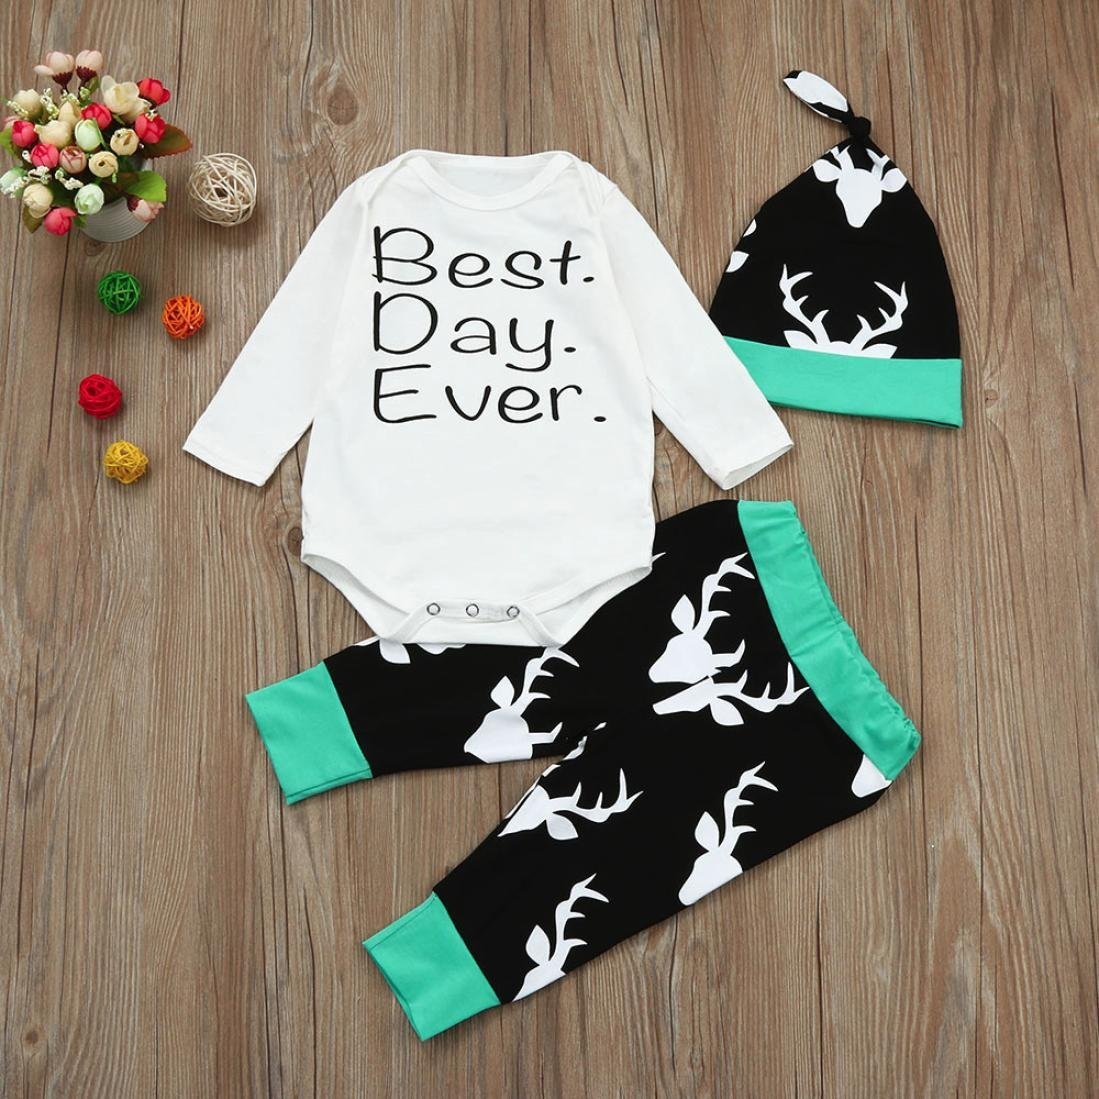 For 0-18 Months Baby,DIGOOD Xmas Toddlers Newborn Baby Boys Girls Letter Romper+Deer Pants+Hat 3Pcs Outfits Clothes